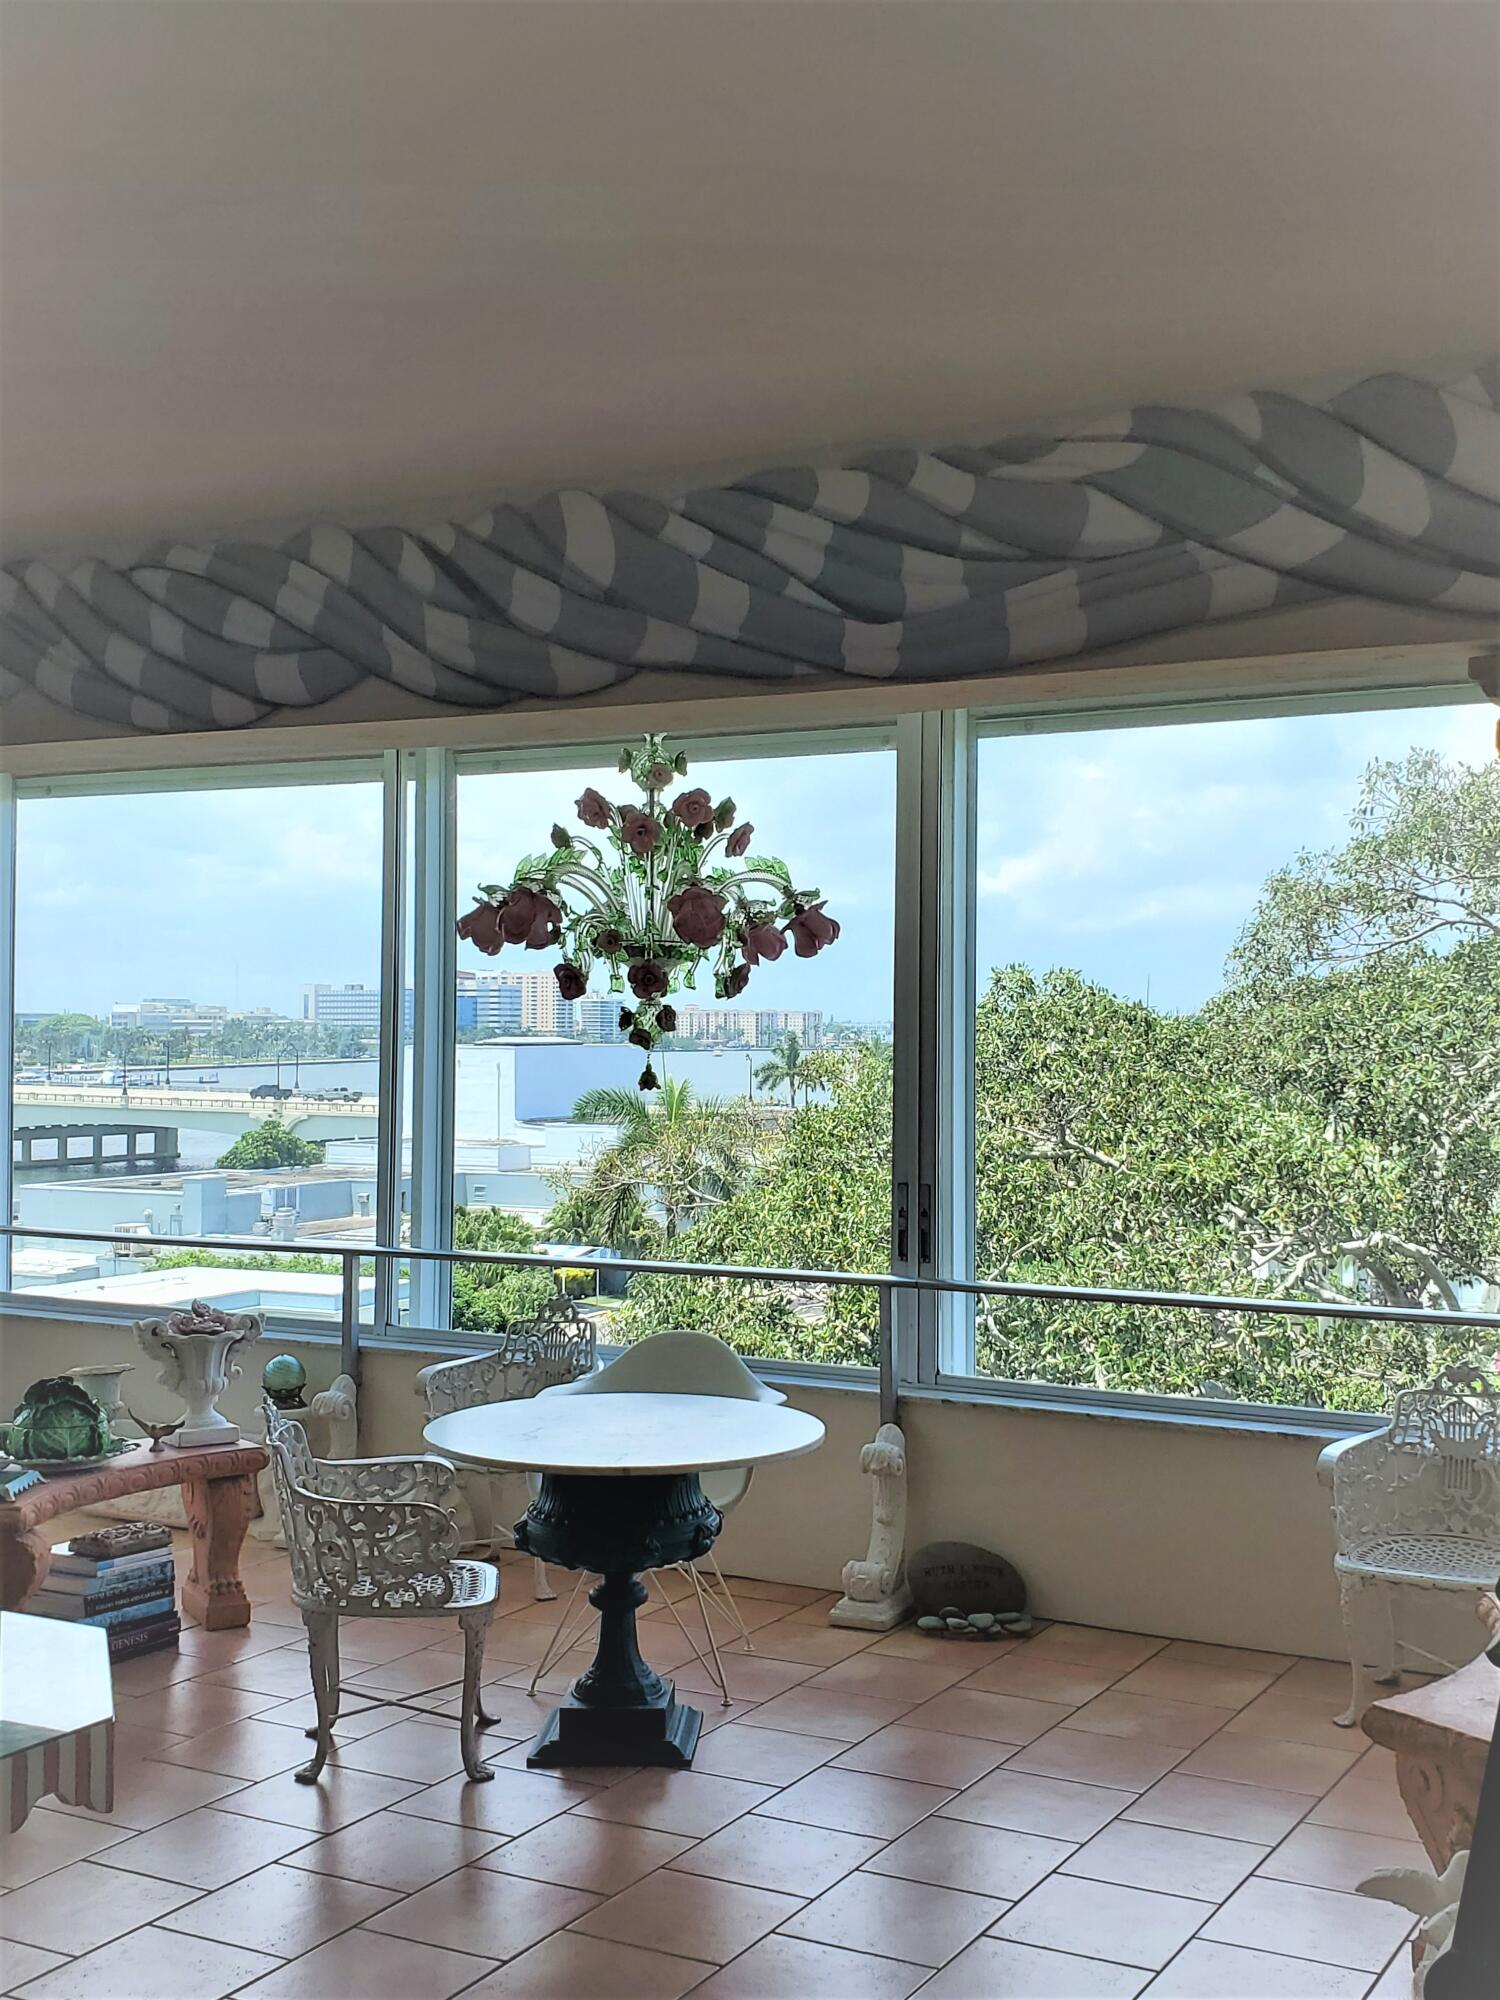 Unique Opportunity to purchase this approx. 1,200 sq. foot Pied-A'-Terre with fabulous intracoastal views looking North up the waterway, and over the trees facing the Chic Royal Poinciana Plaza. With Two full baths Unit 502A is ready for you to make it yours! Full Service Building, Fabulous pool overlooking the Intracoastal, Exercise Room, Valet... Best location in Town, walk to The Royal, Publix, The Breakers, etc...